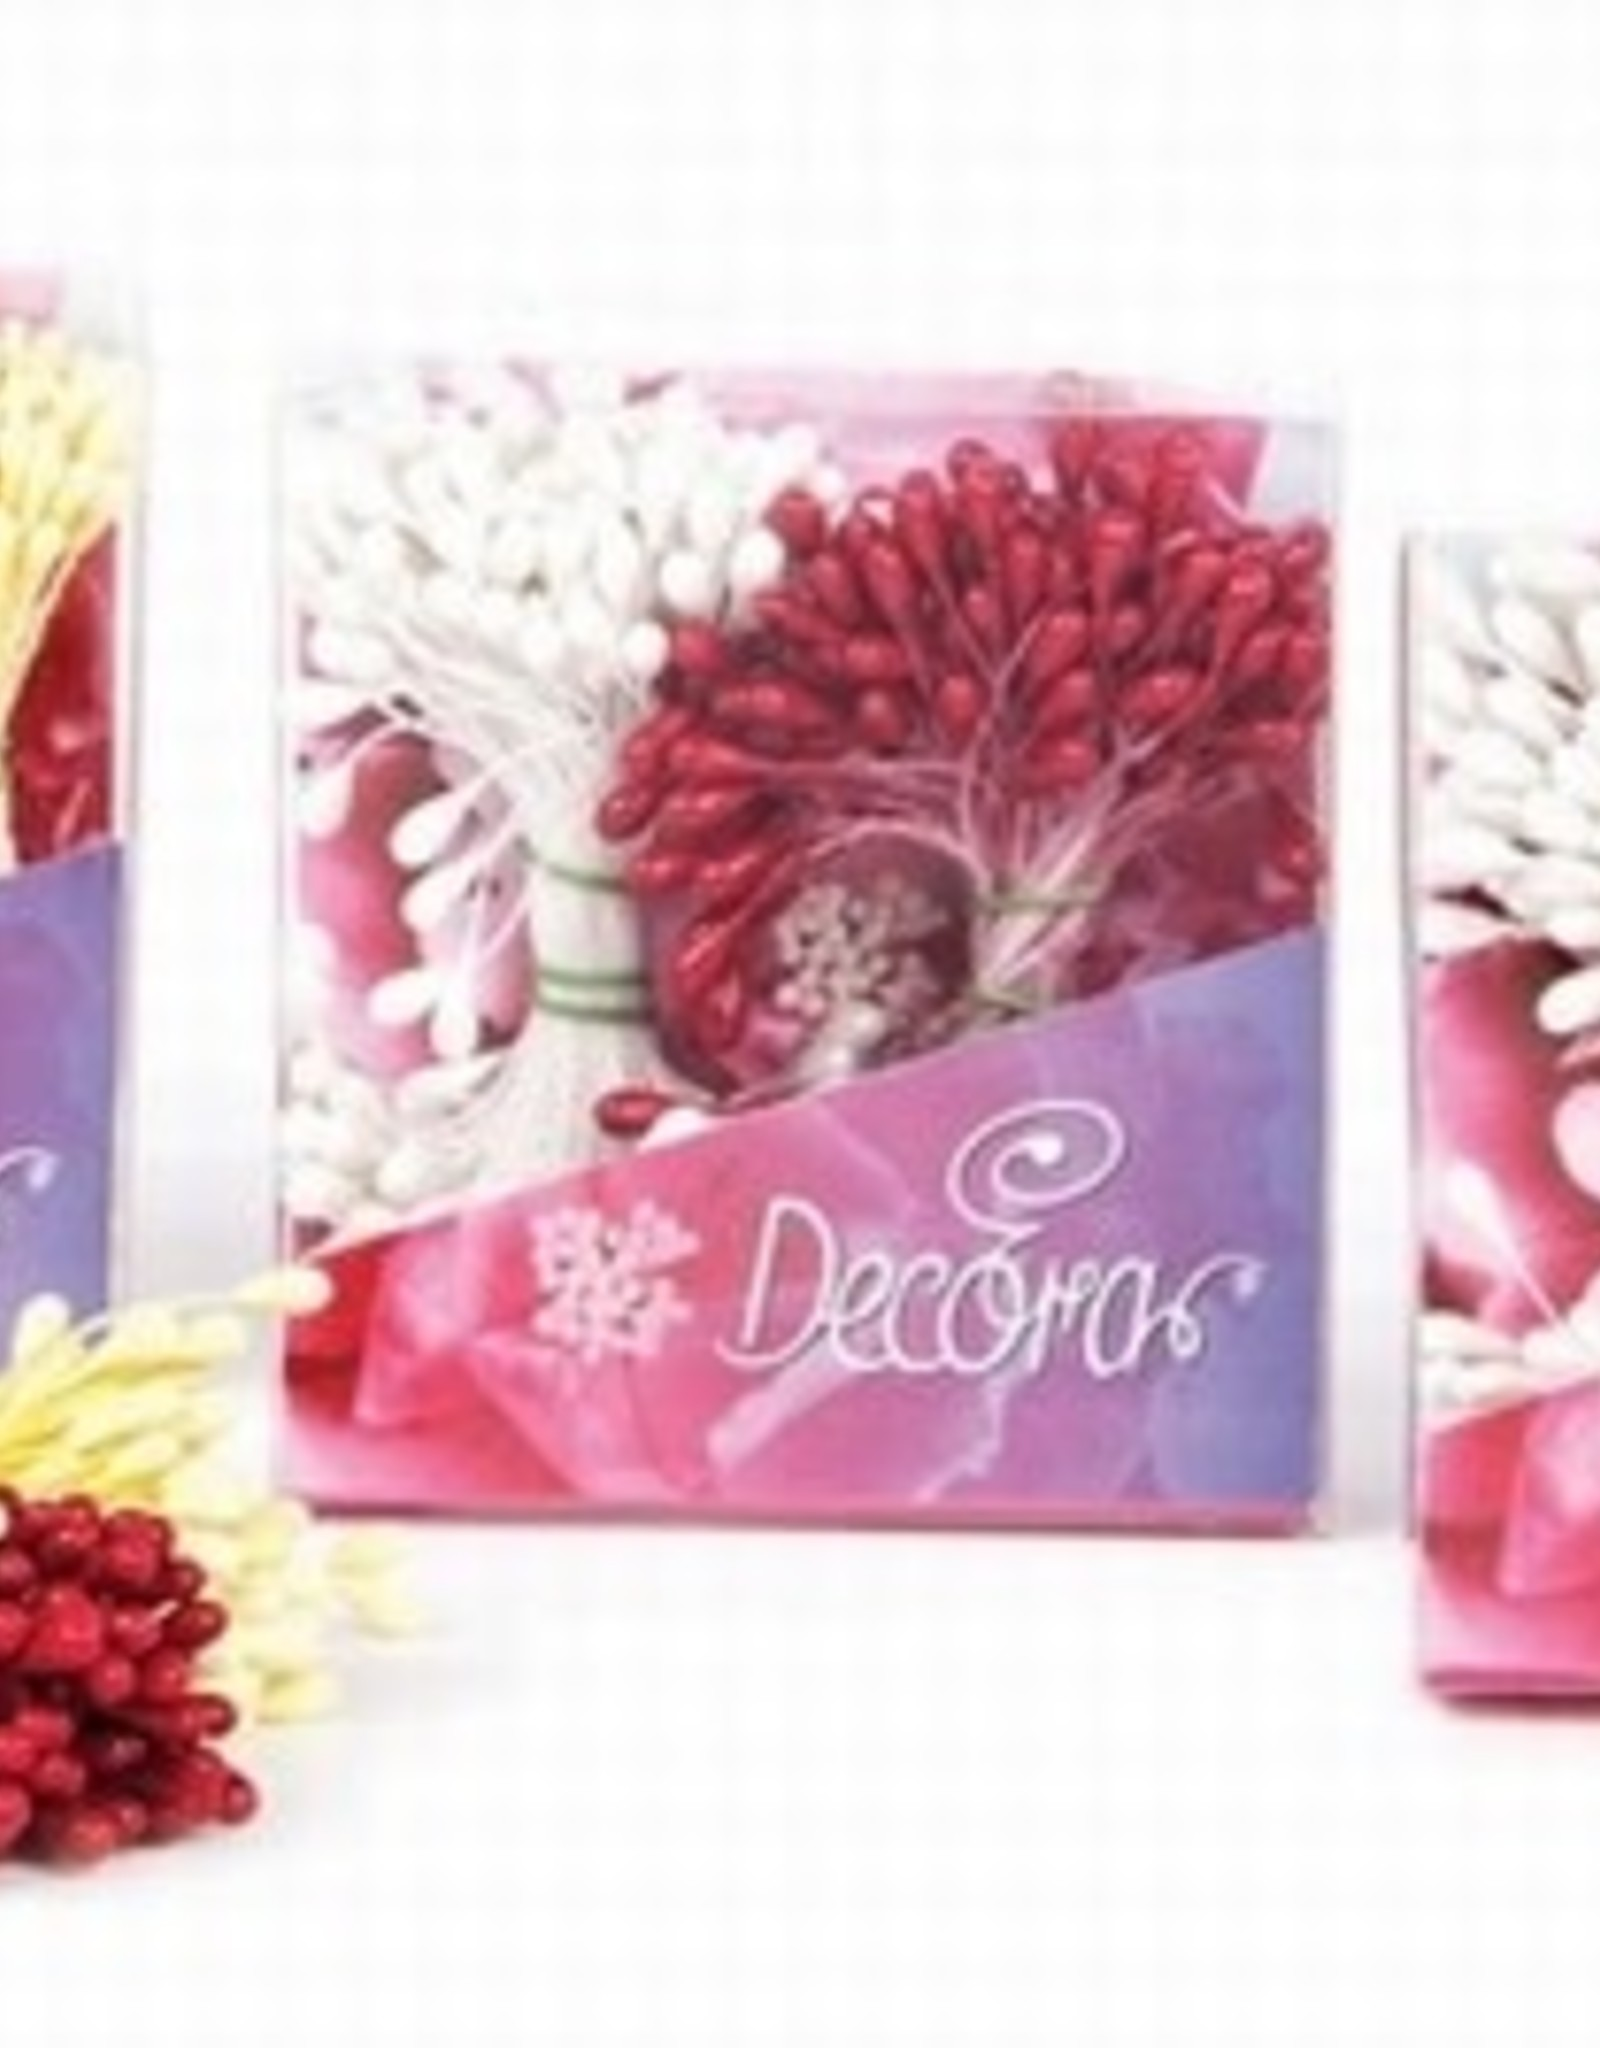 Decora Decora Pistils For Flowers Red/Yellow, 288st.